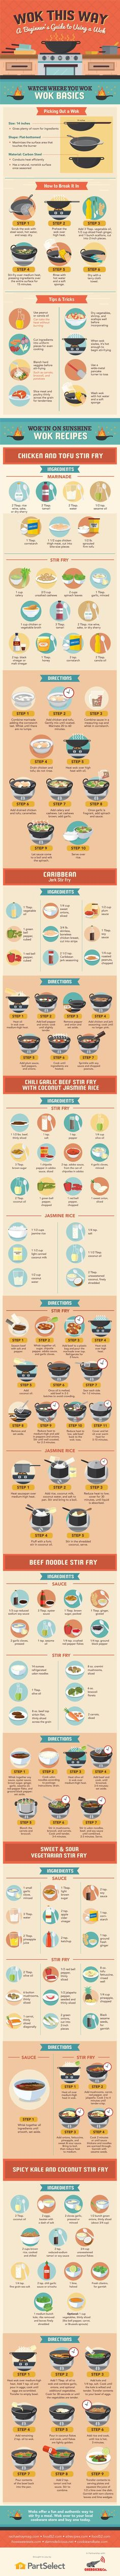 Wok This Way: A Beginner's Guide to Using A Wok #Infographic